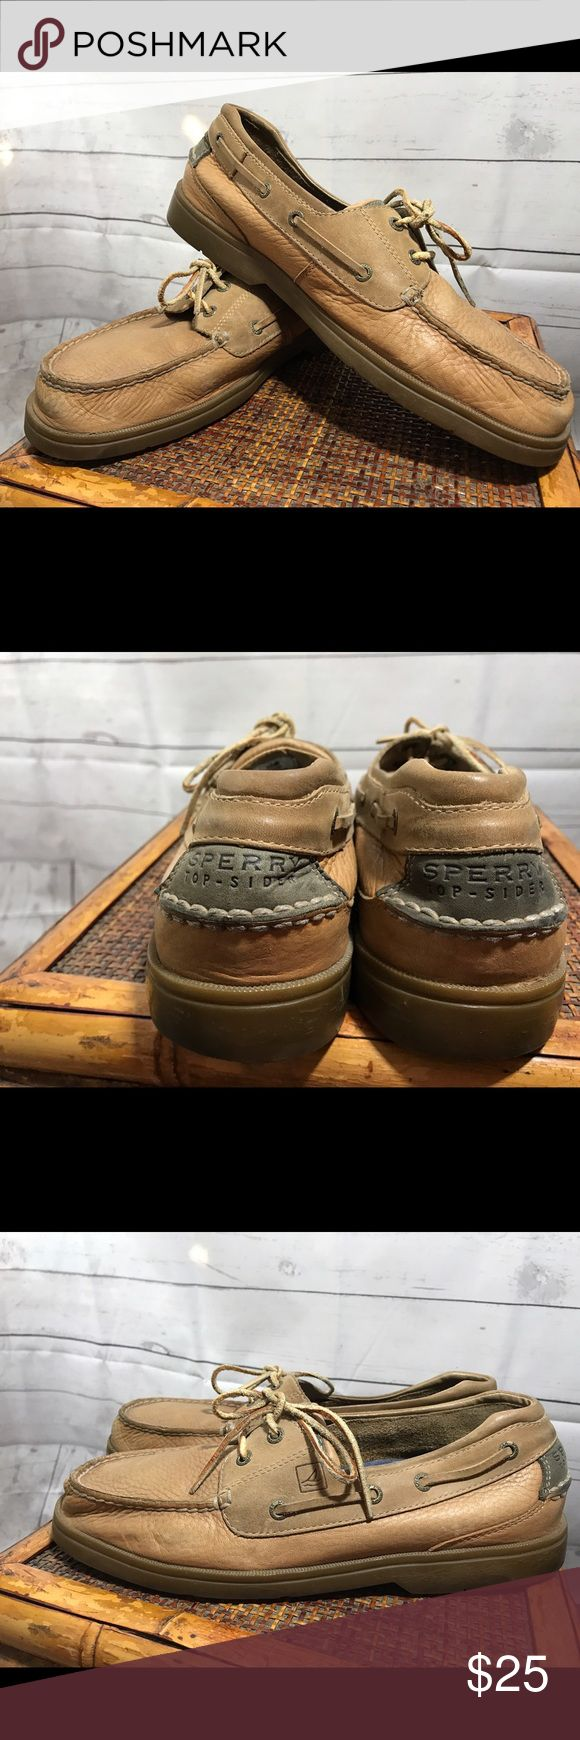 Sperry Topsiders Men's Size 10 Sperry Topsiders in great condition! Sperry Top-Sider Shoes Boat Shoes